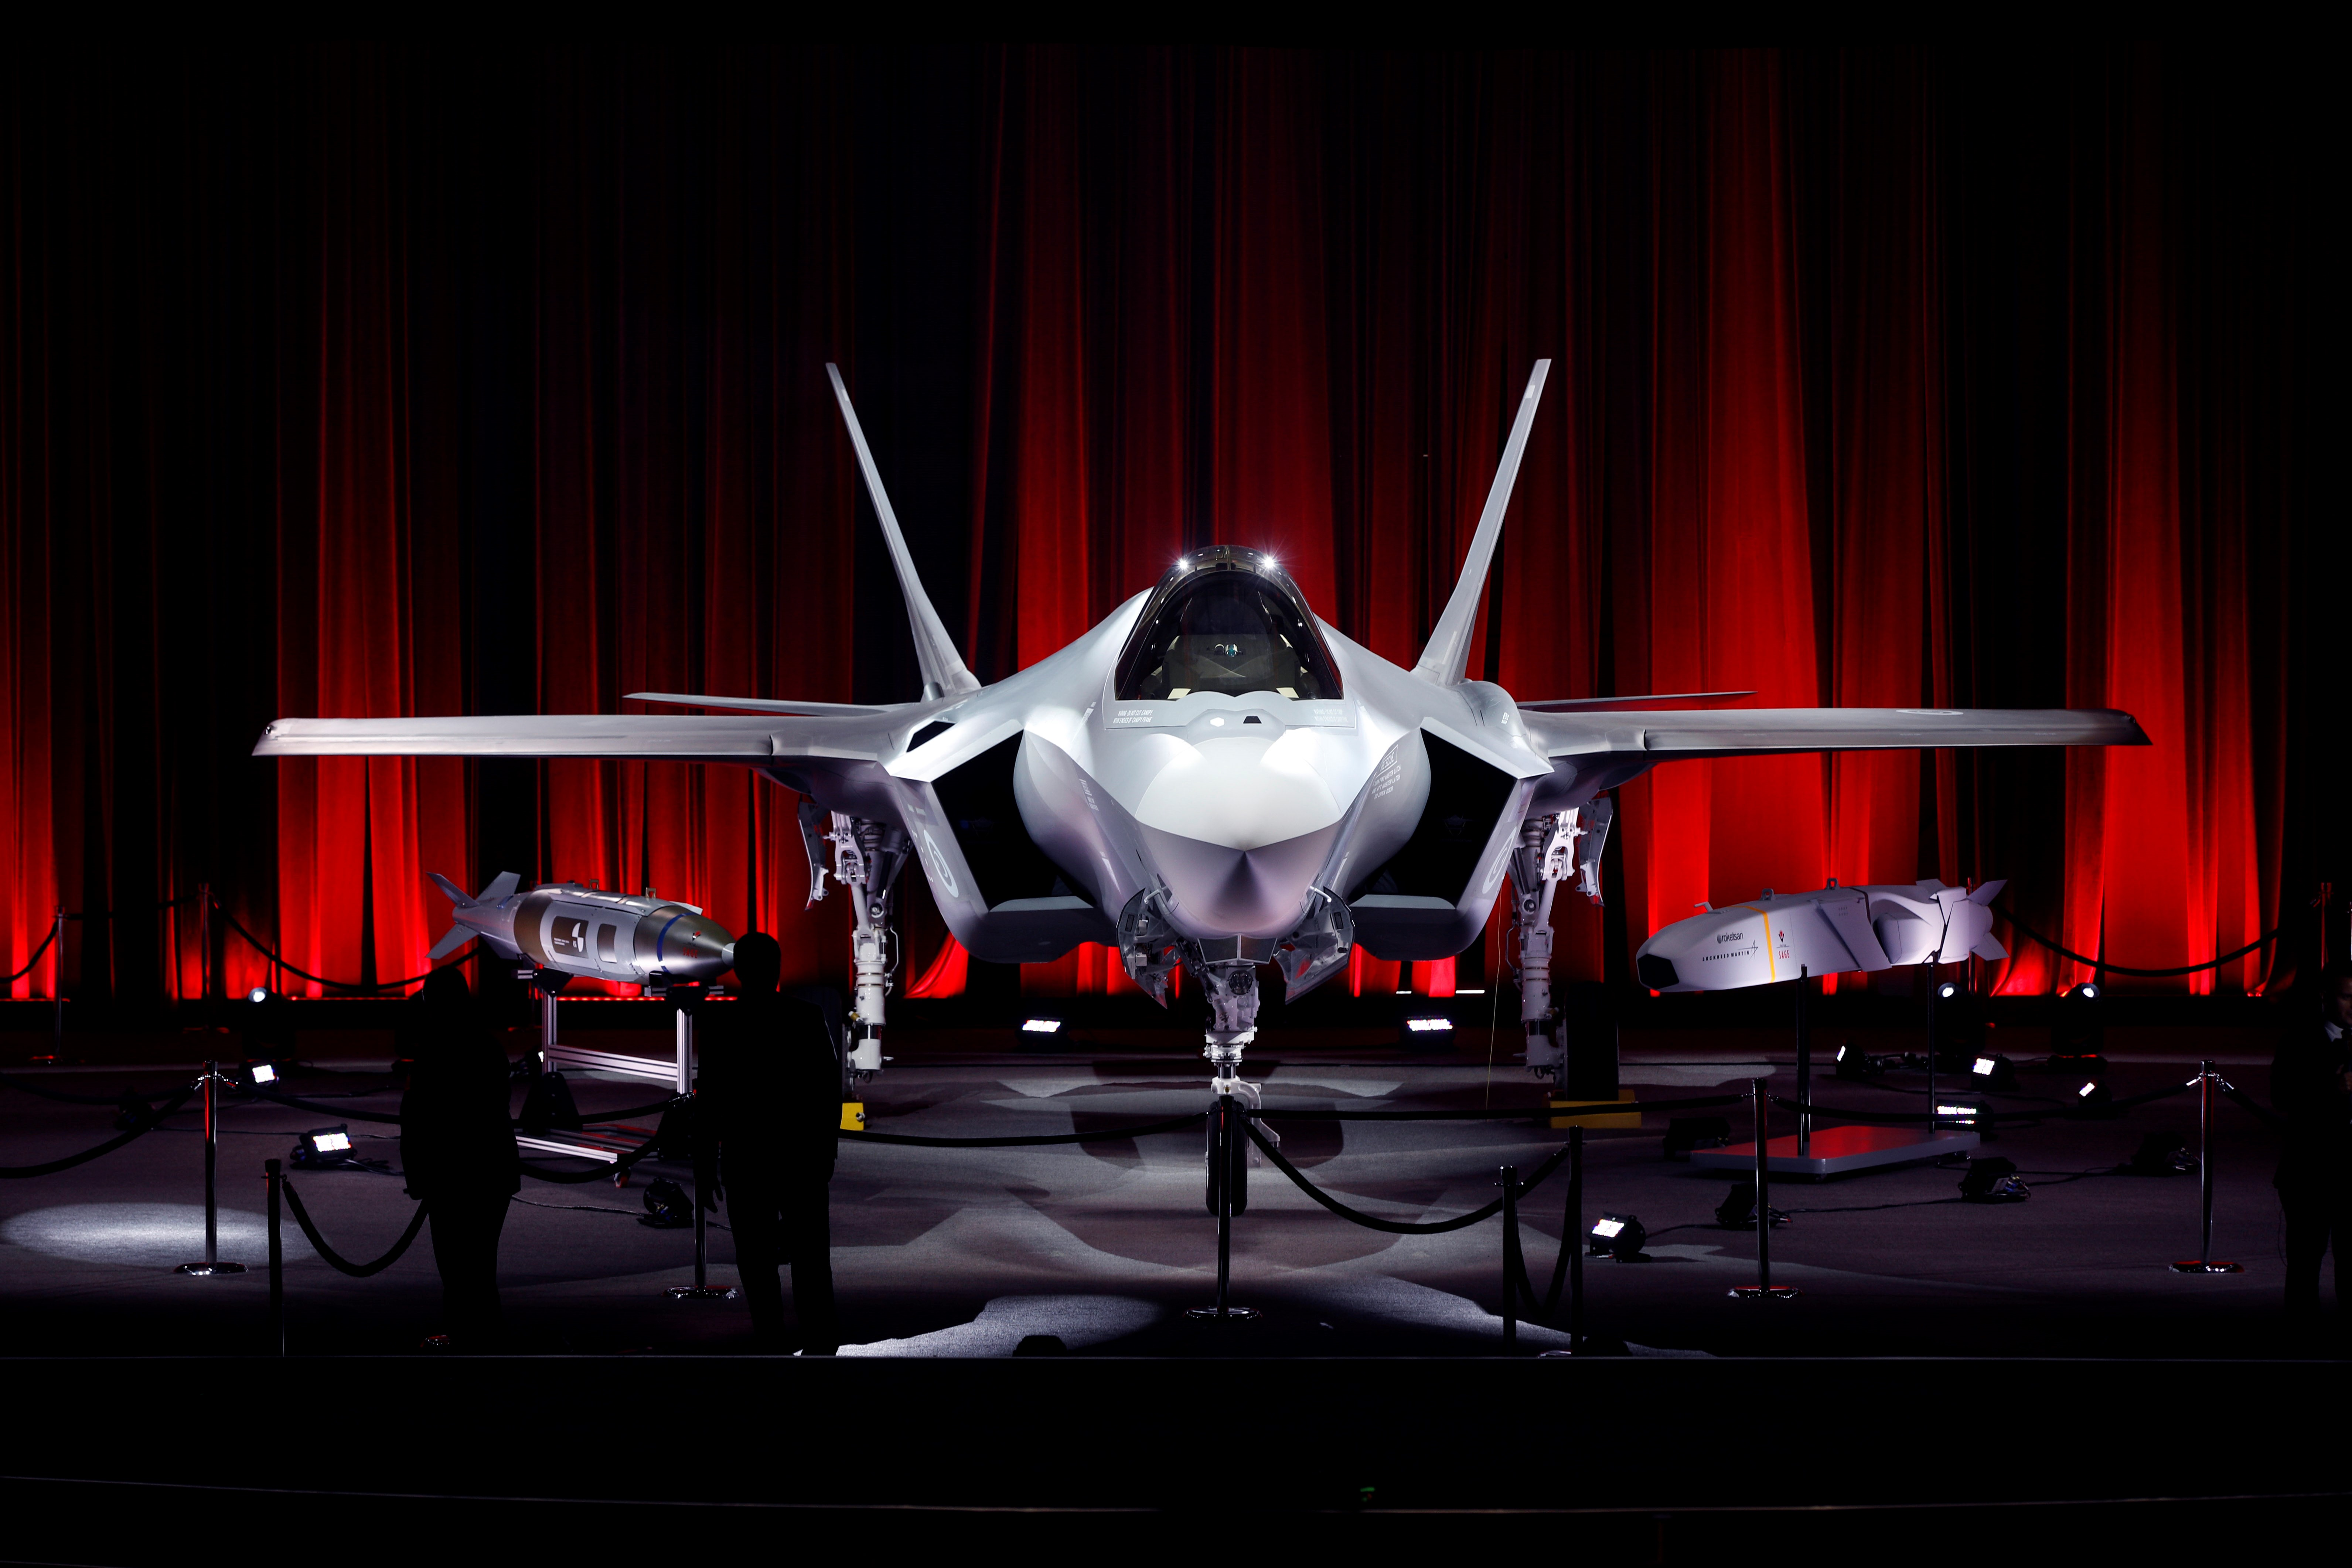 Pictured here is the first F-35 stealth fighter jet that was destined for Turkey. In July, the U.S. canceled Turkey's order for the advanced jet after it took delivery of an S-400 Russian missile system.